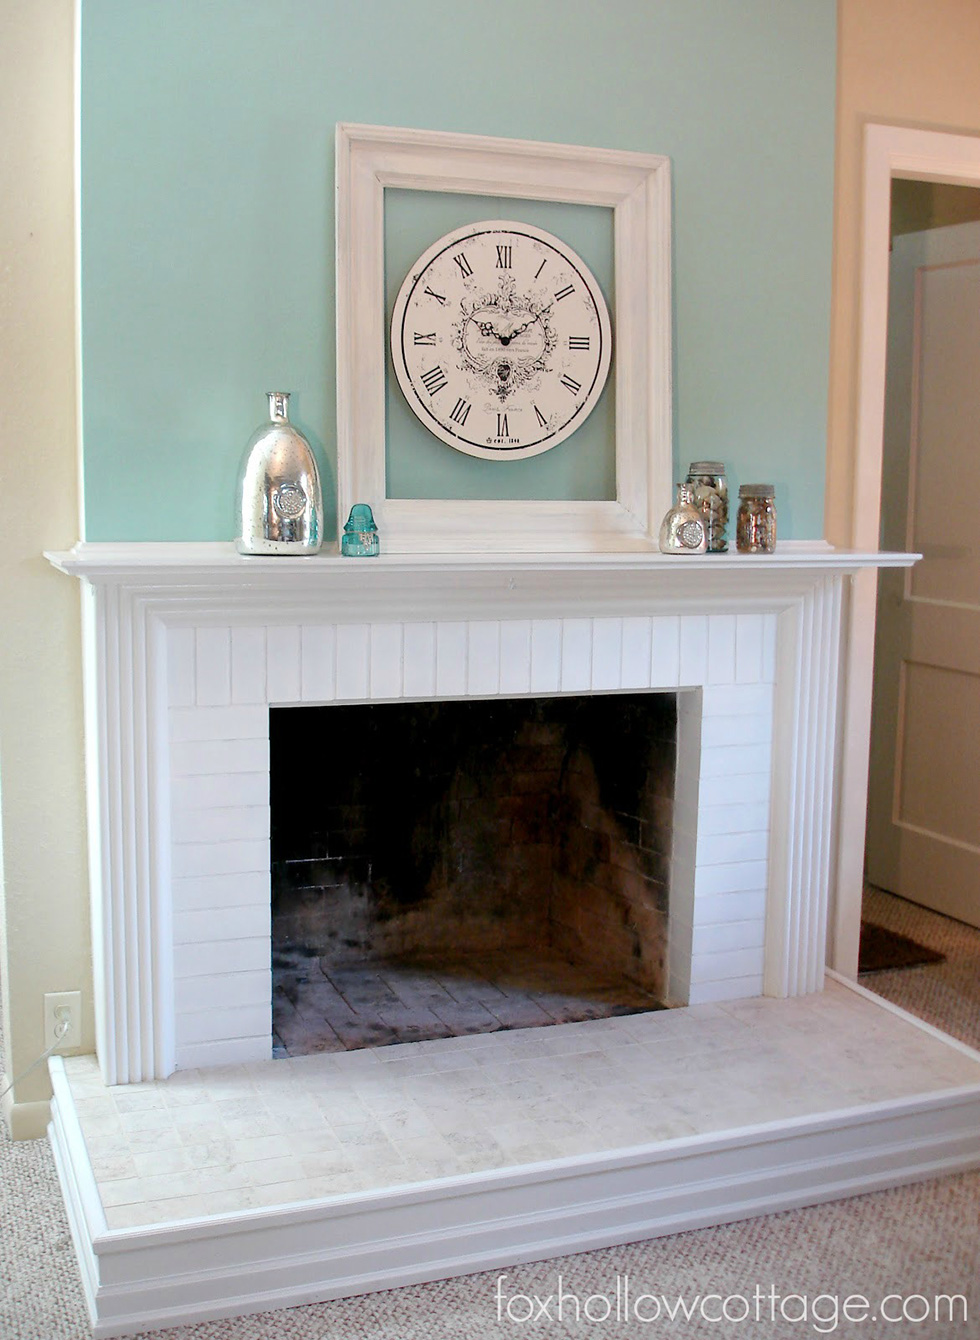 Cost of building a fireplace - Before And After Fireplace Makeovers Fireplace Surrounds Houselogic